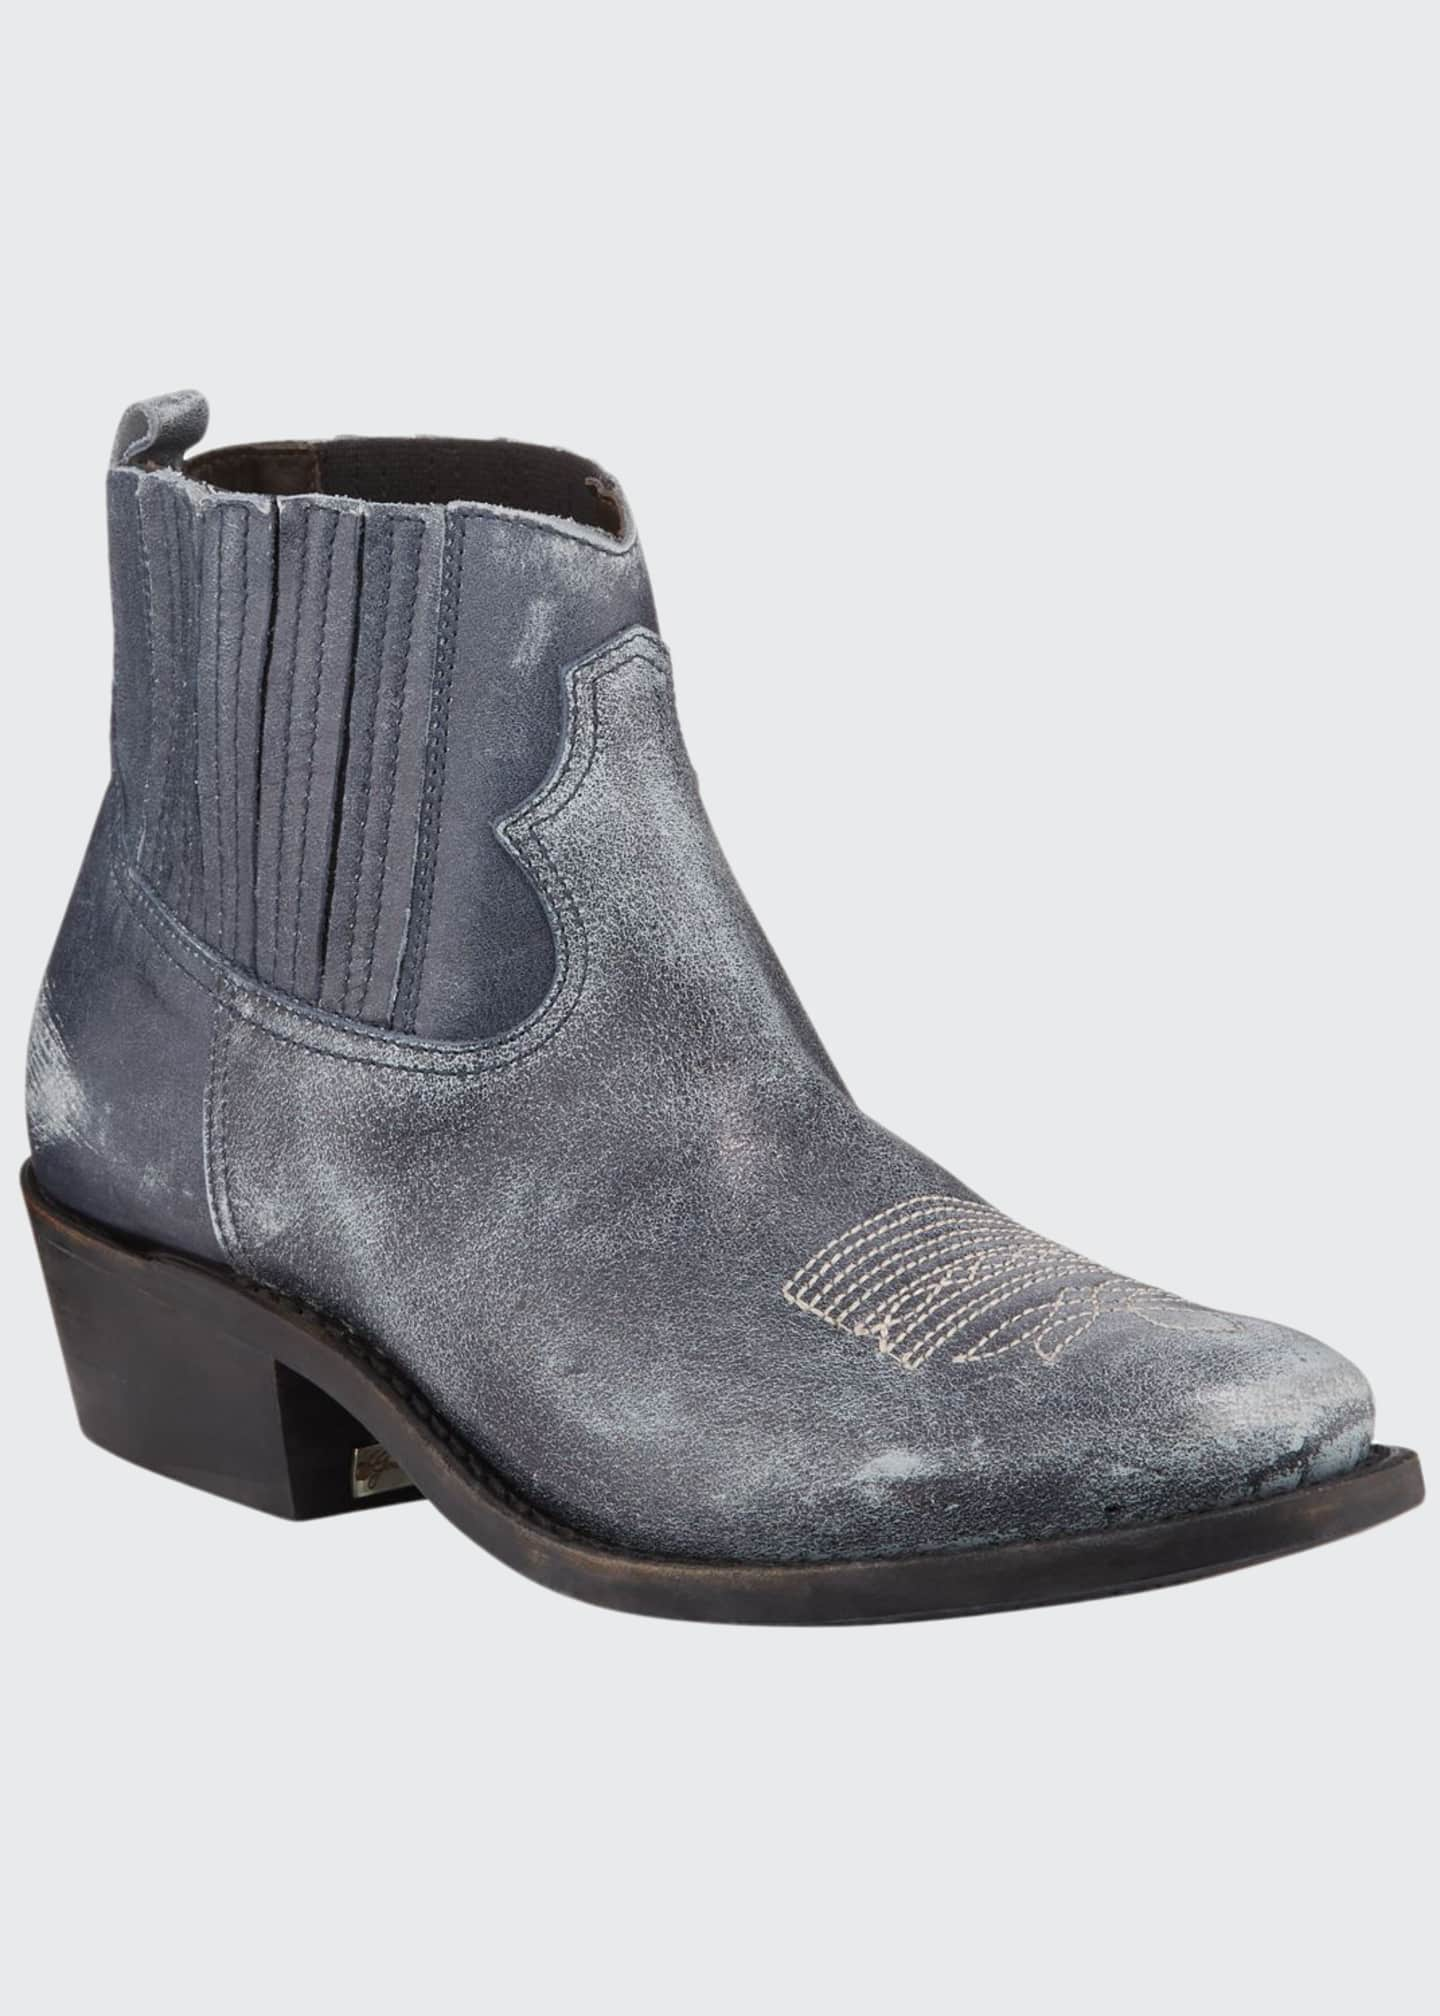 Golden Goose Crosby Western Leather Boots